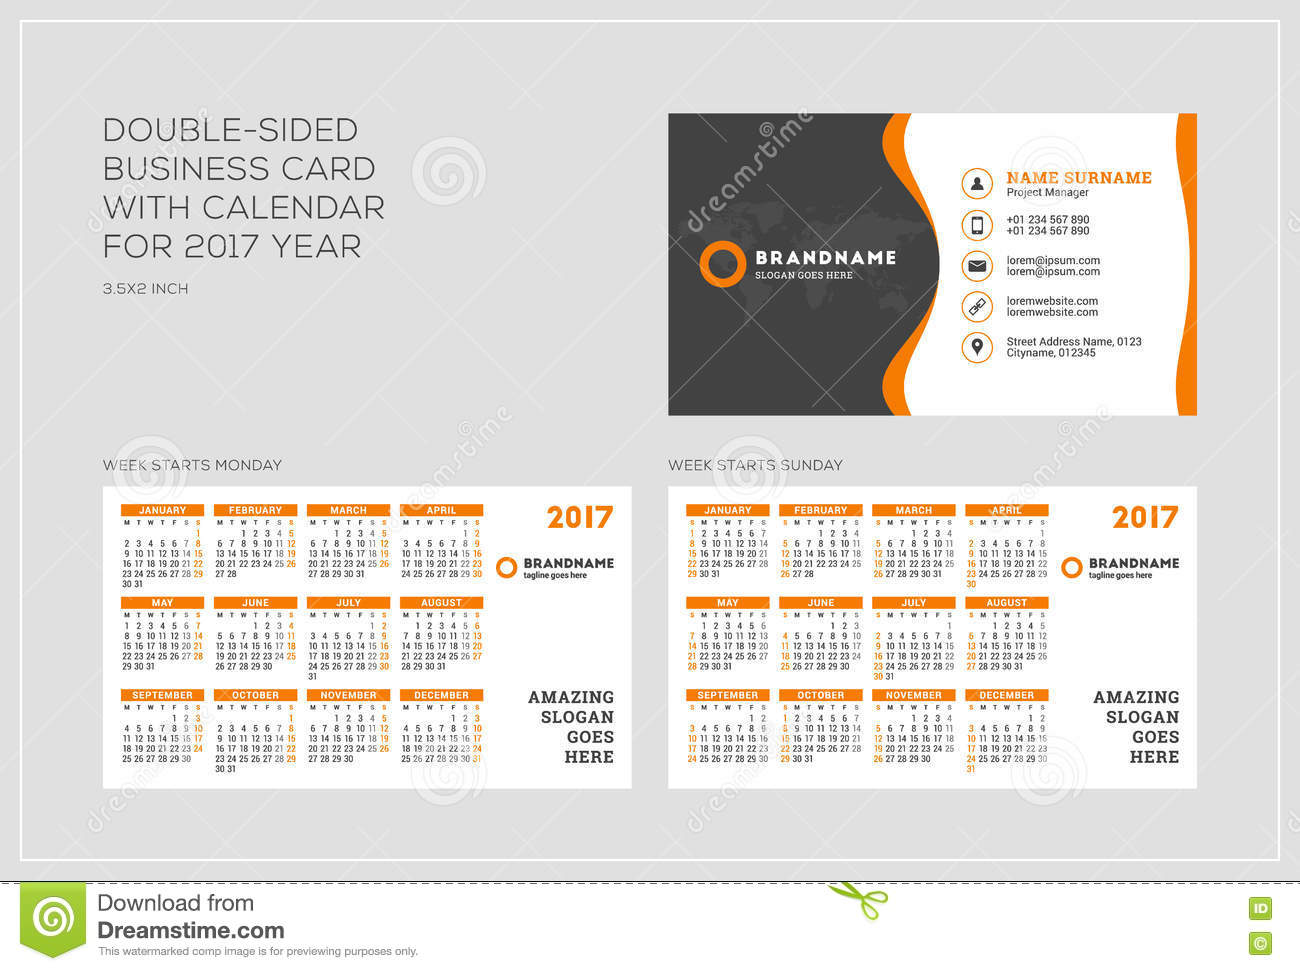 DoubleSided Business Card Template With Calendar For Year - Double sided business card template